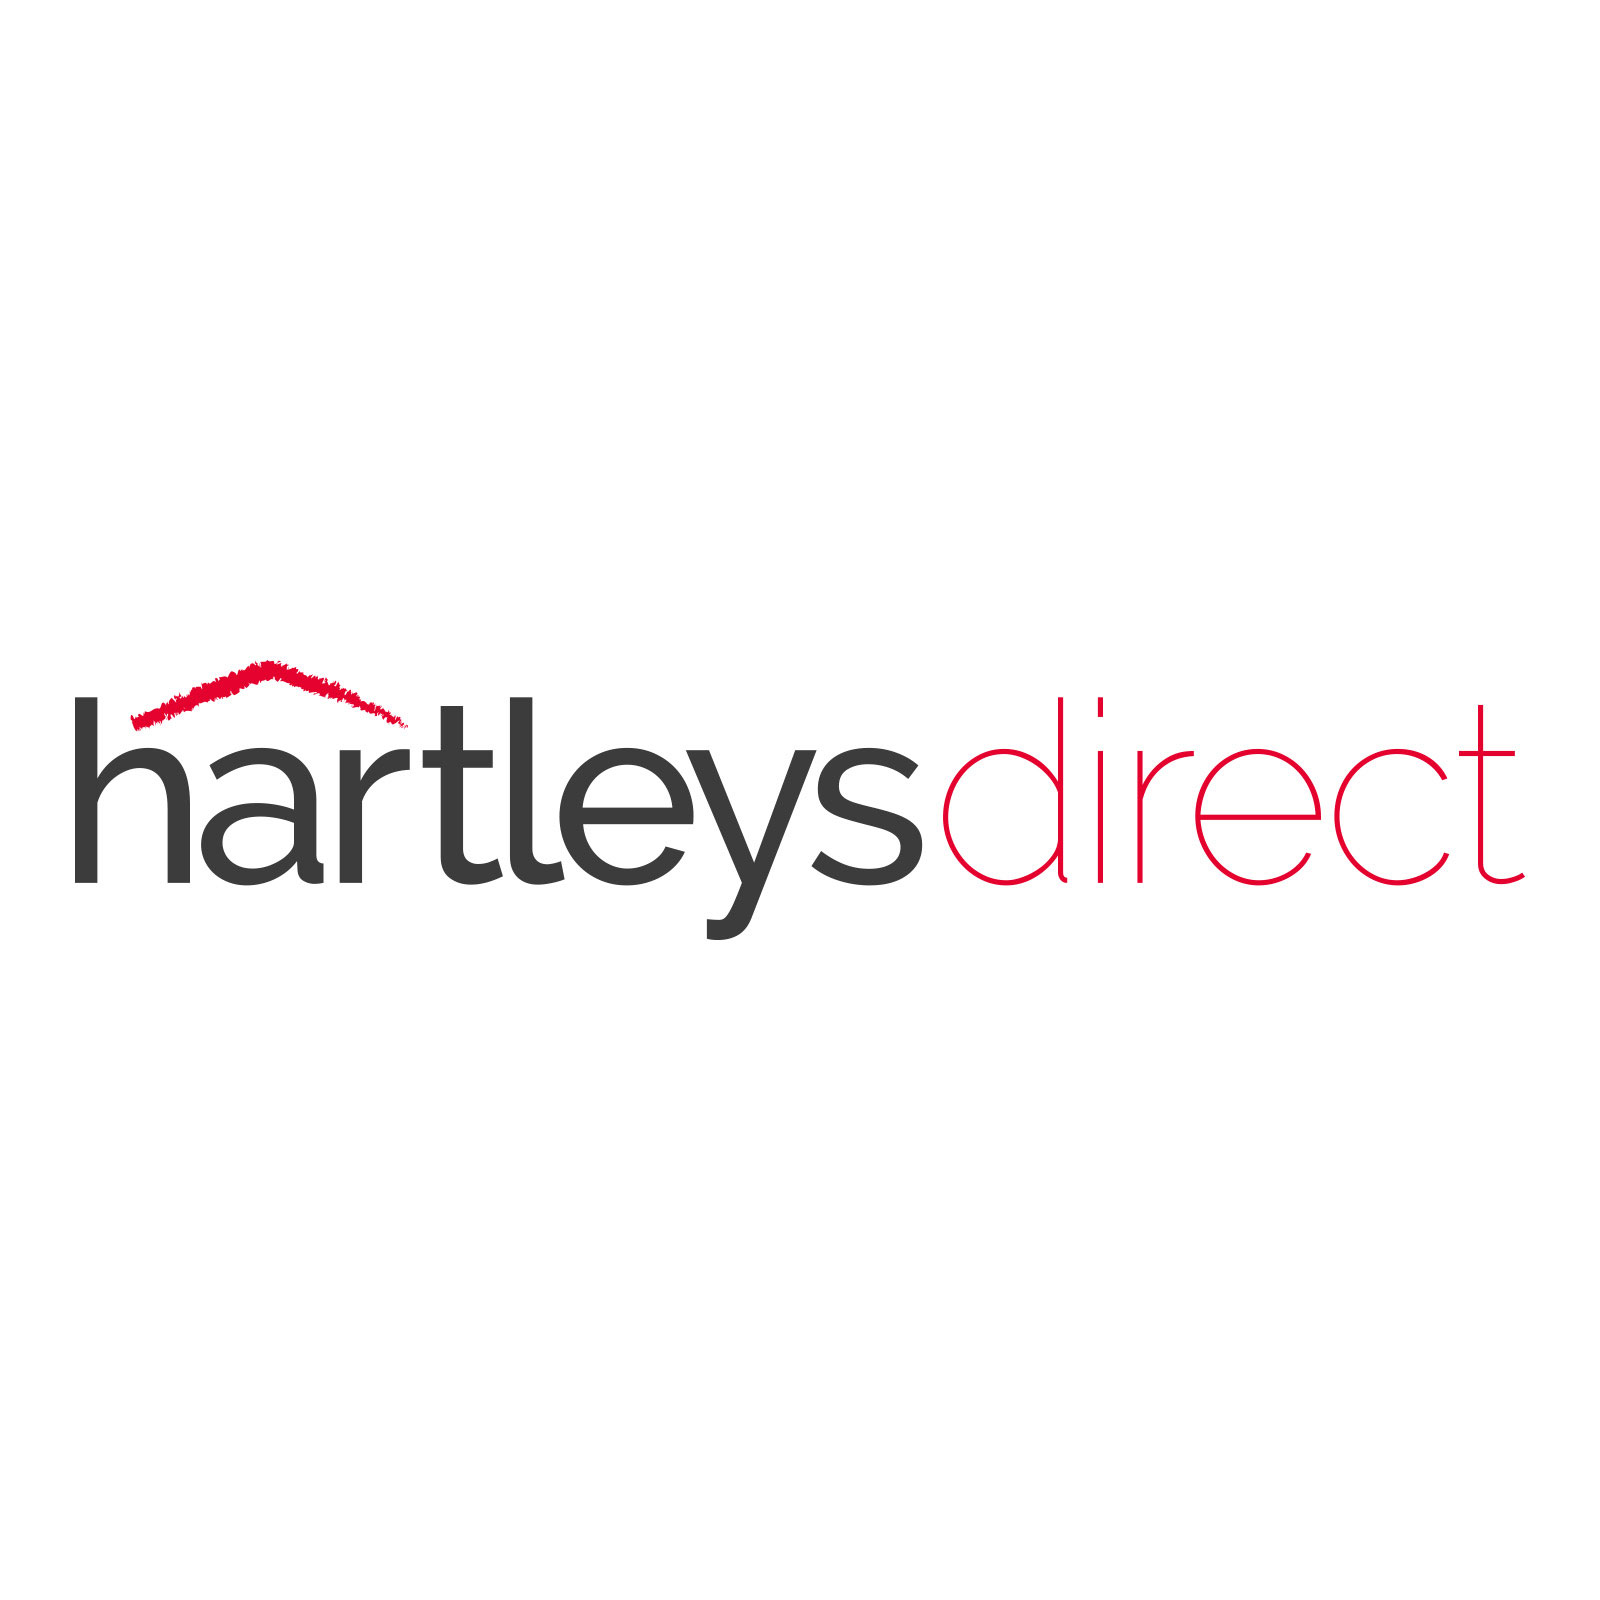 Hartleys-2-Tier-Black-Cube-Unit-with-2-White-Box-Drawers-and-Colours-on-White-Background.jpg